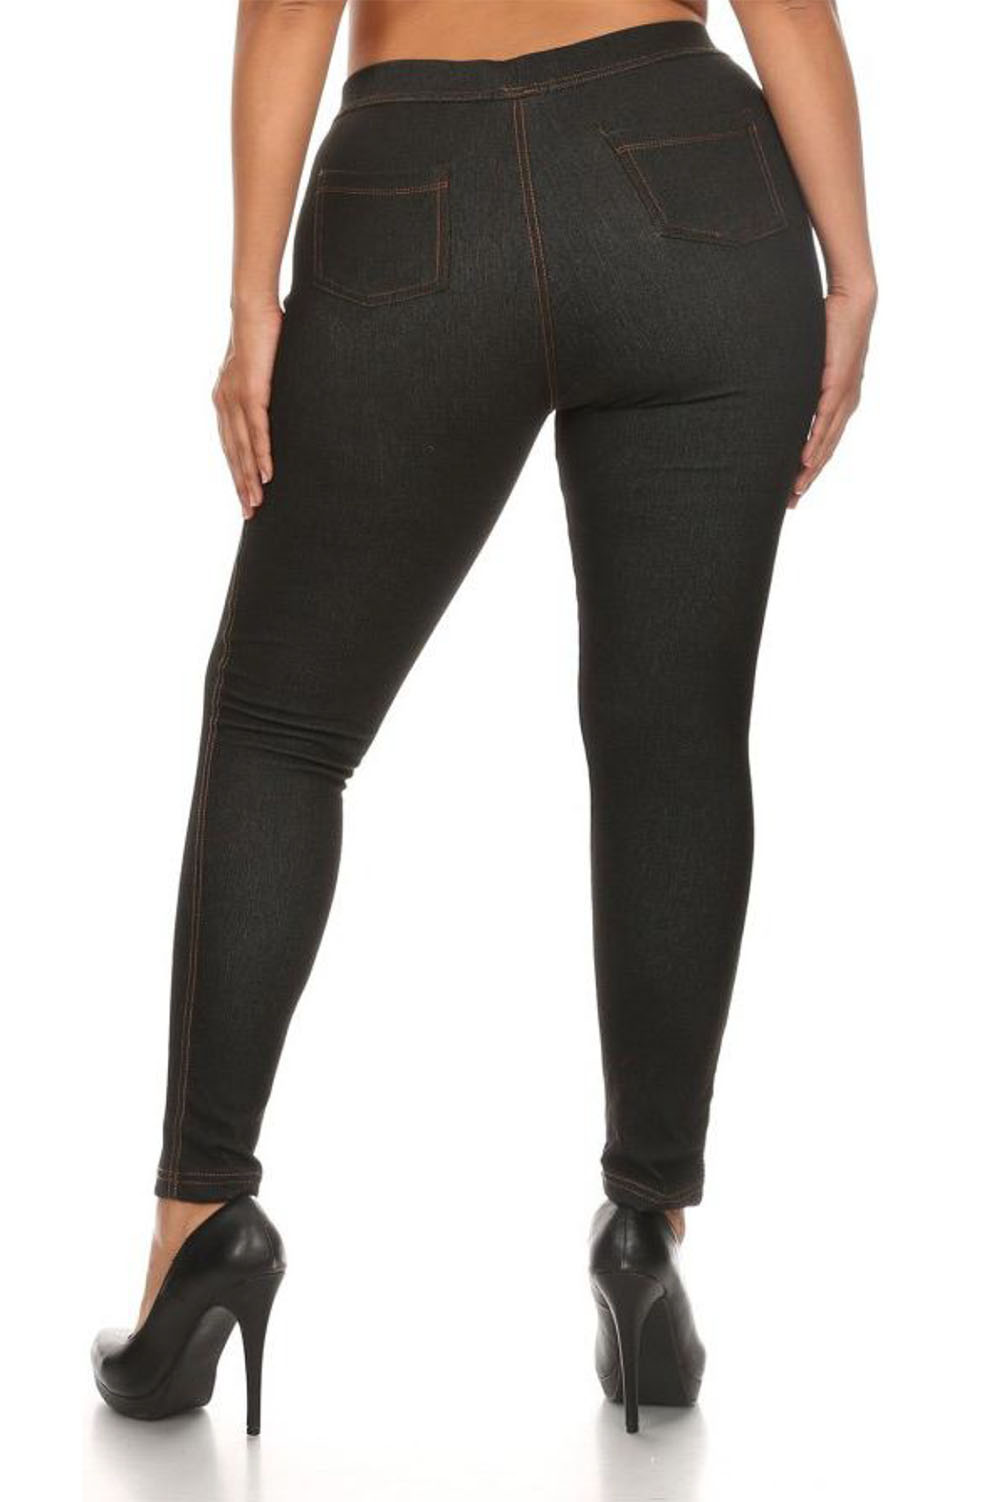 Denim look leggings with fleece lining